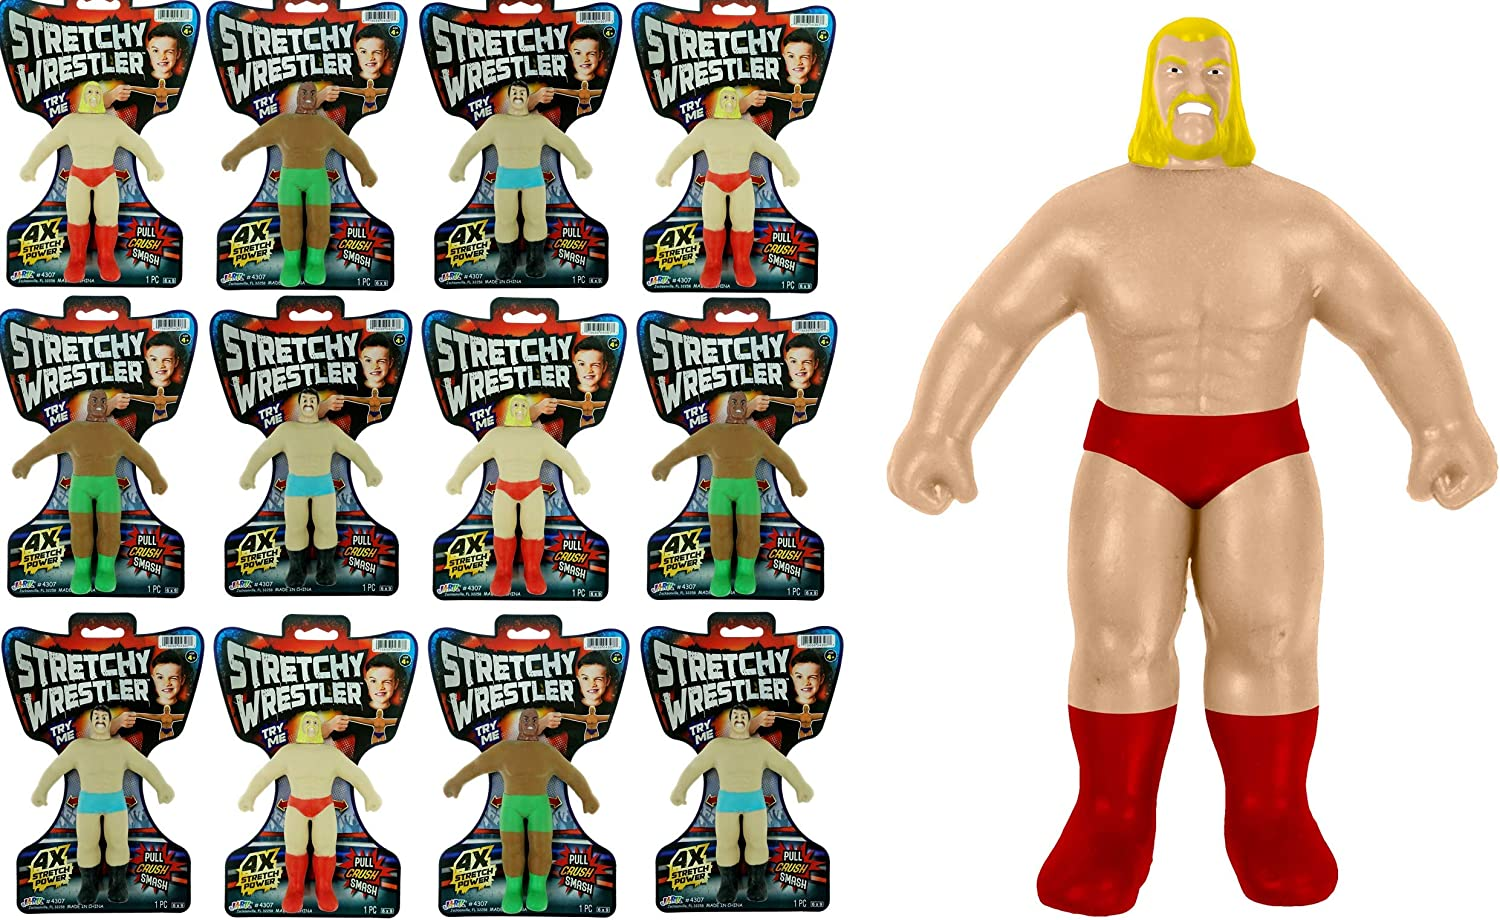 Stretchy Toy Wrestler Figures Squish 4 years warranty and Toys Pull Pack 12 Bulk latest